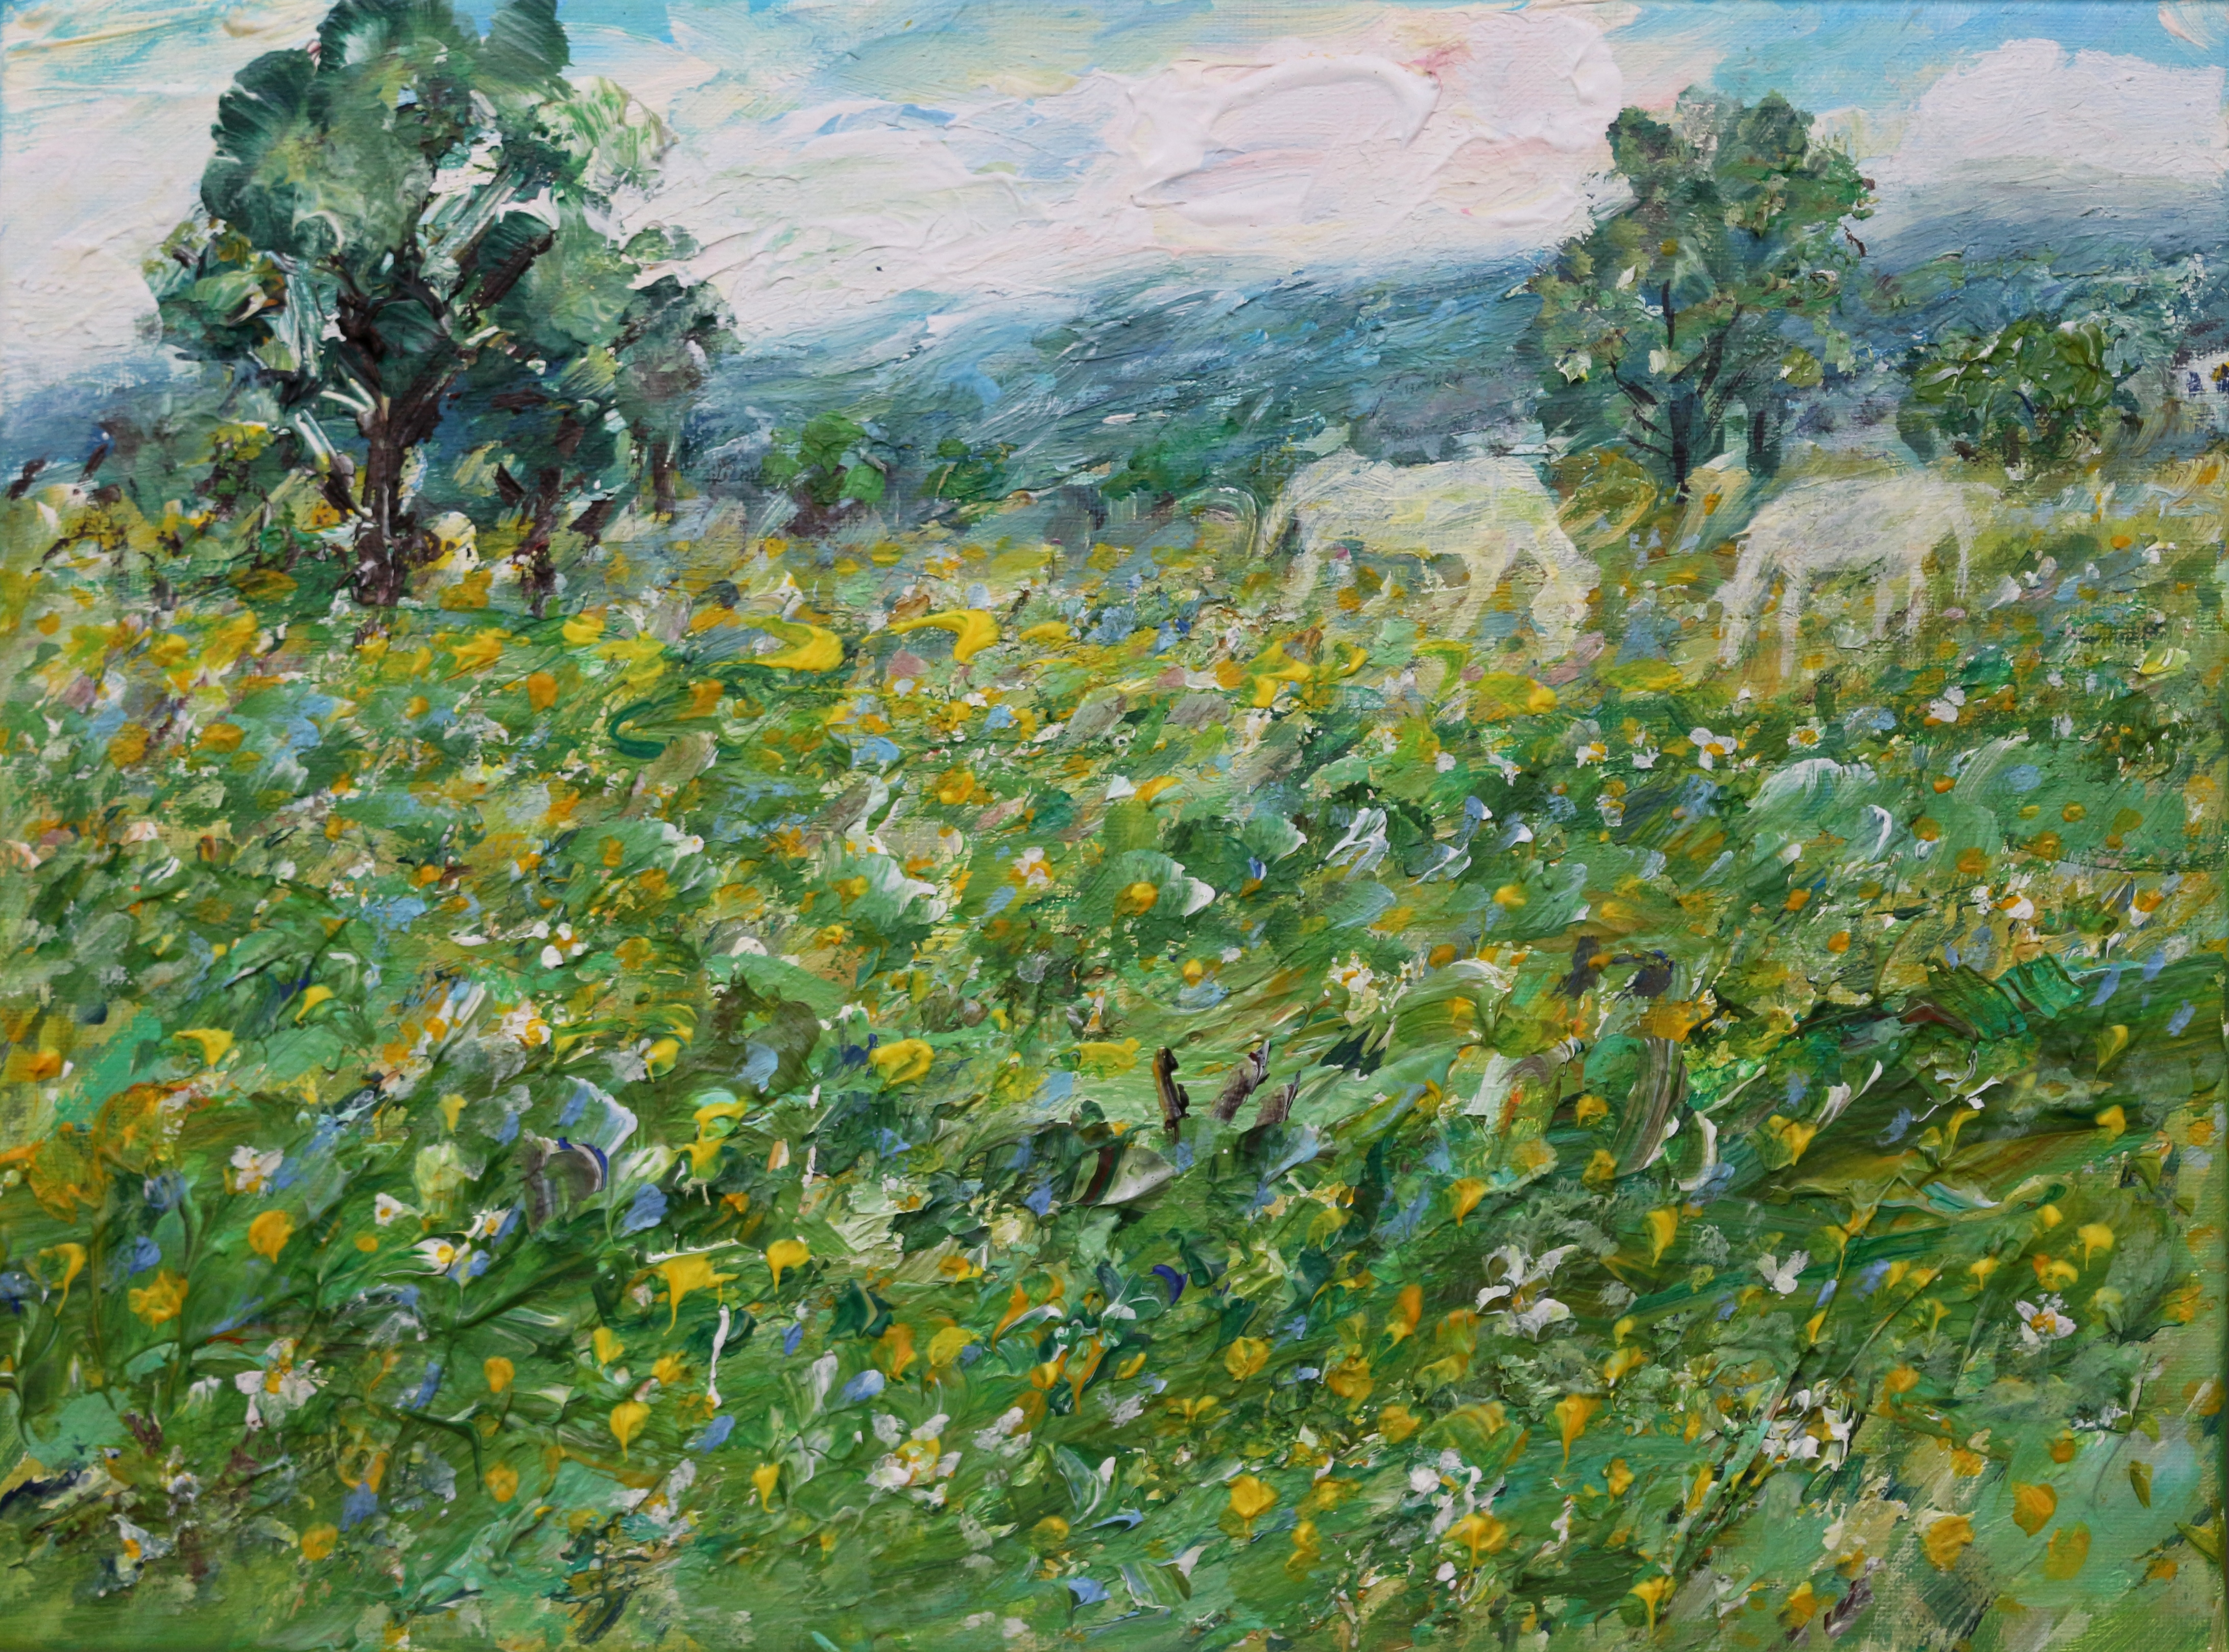 White Ponies in the Meadow 30 x40cm